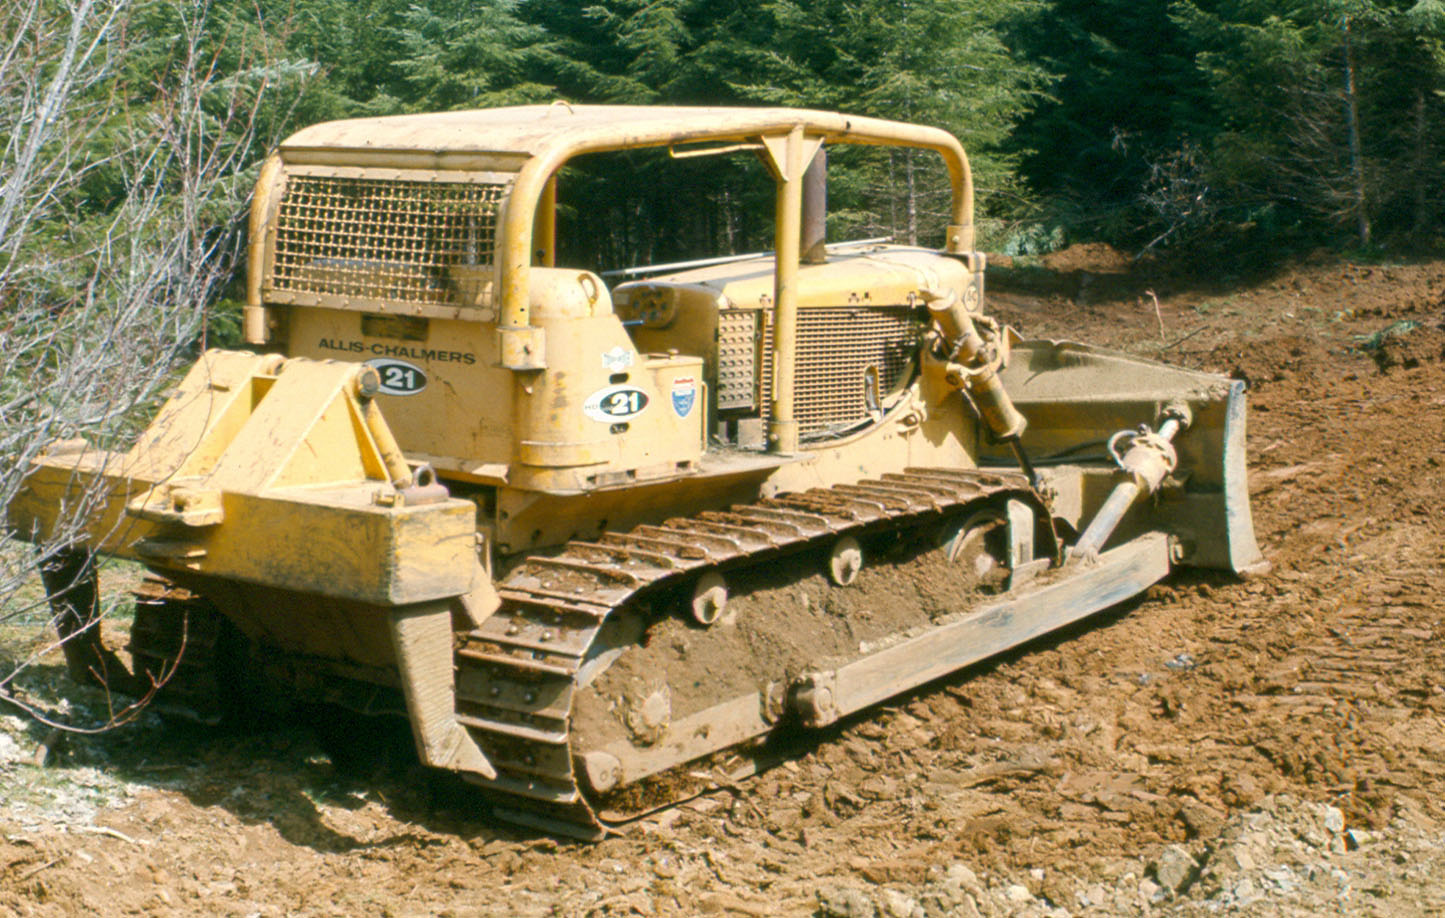 Allis-chalmers bulldozer photo - 1